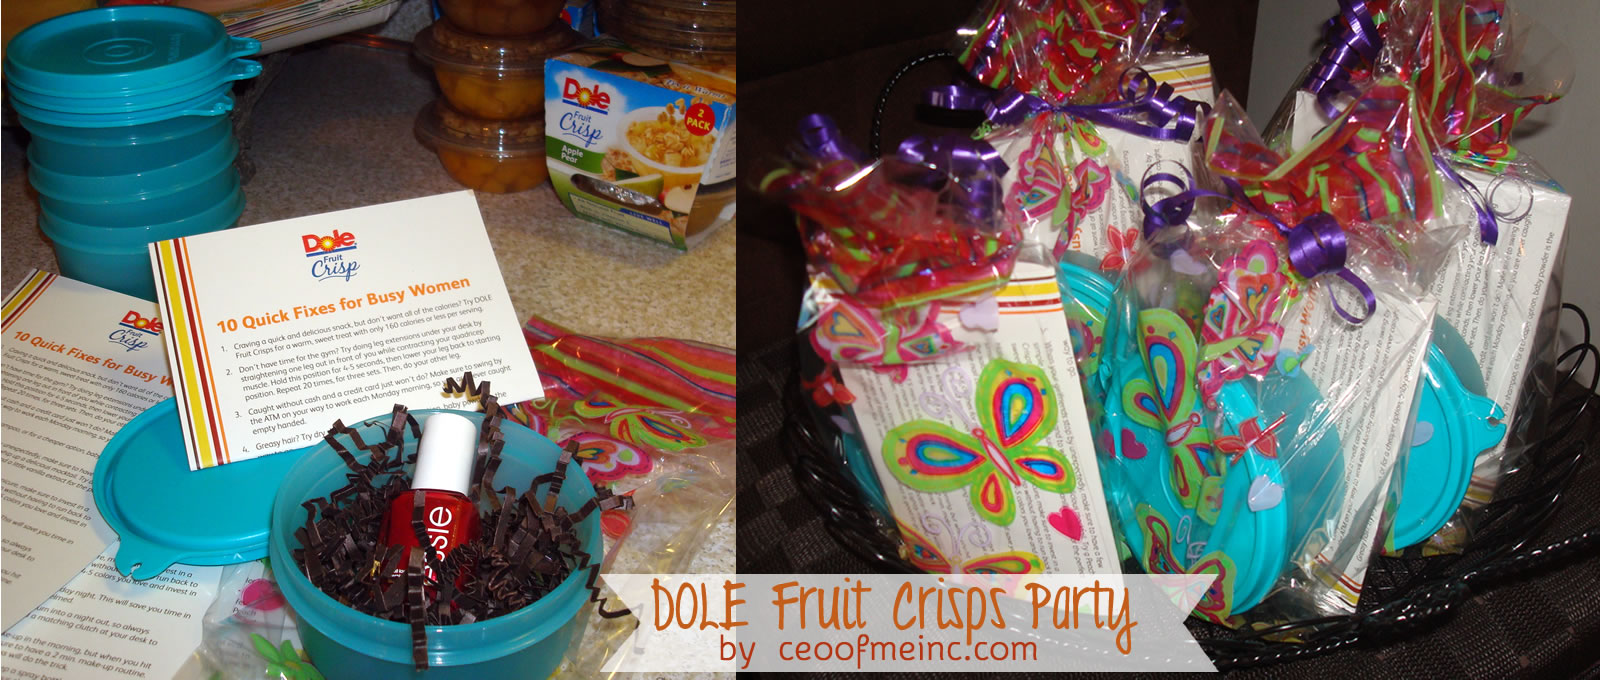 DOLE Fruit Crisps Party Swag Bags